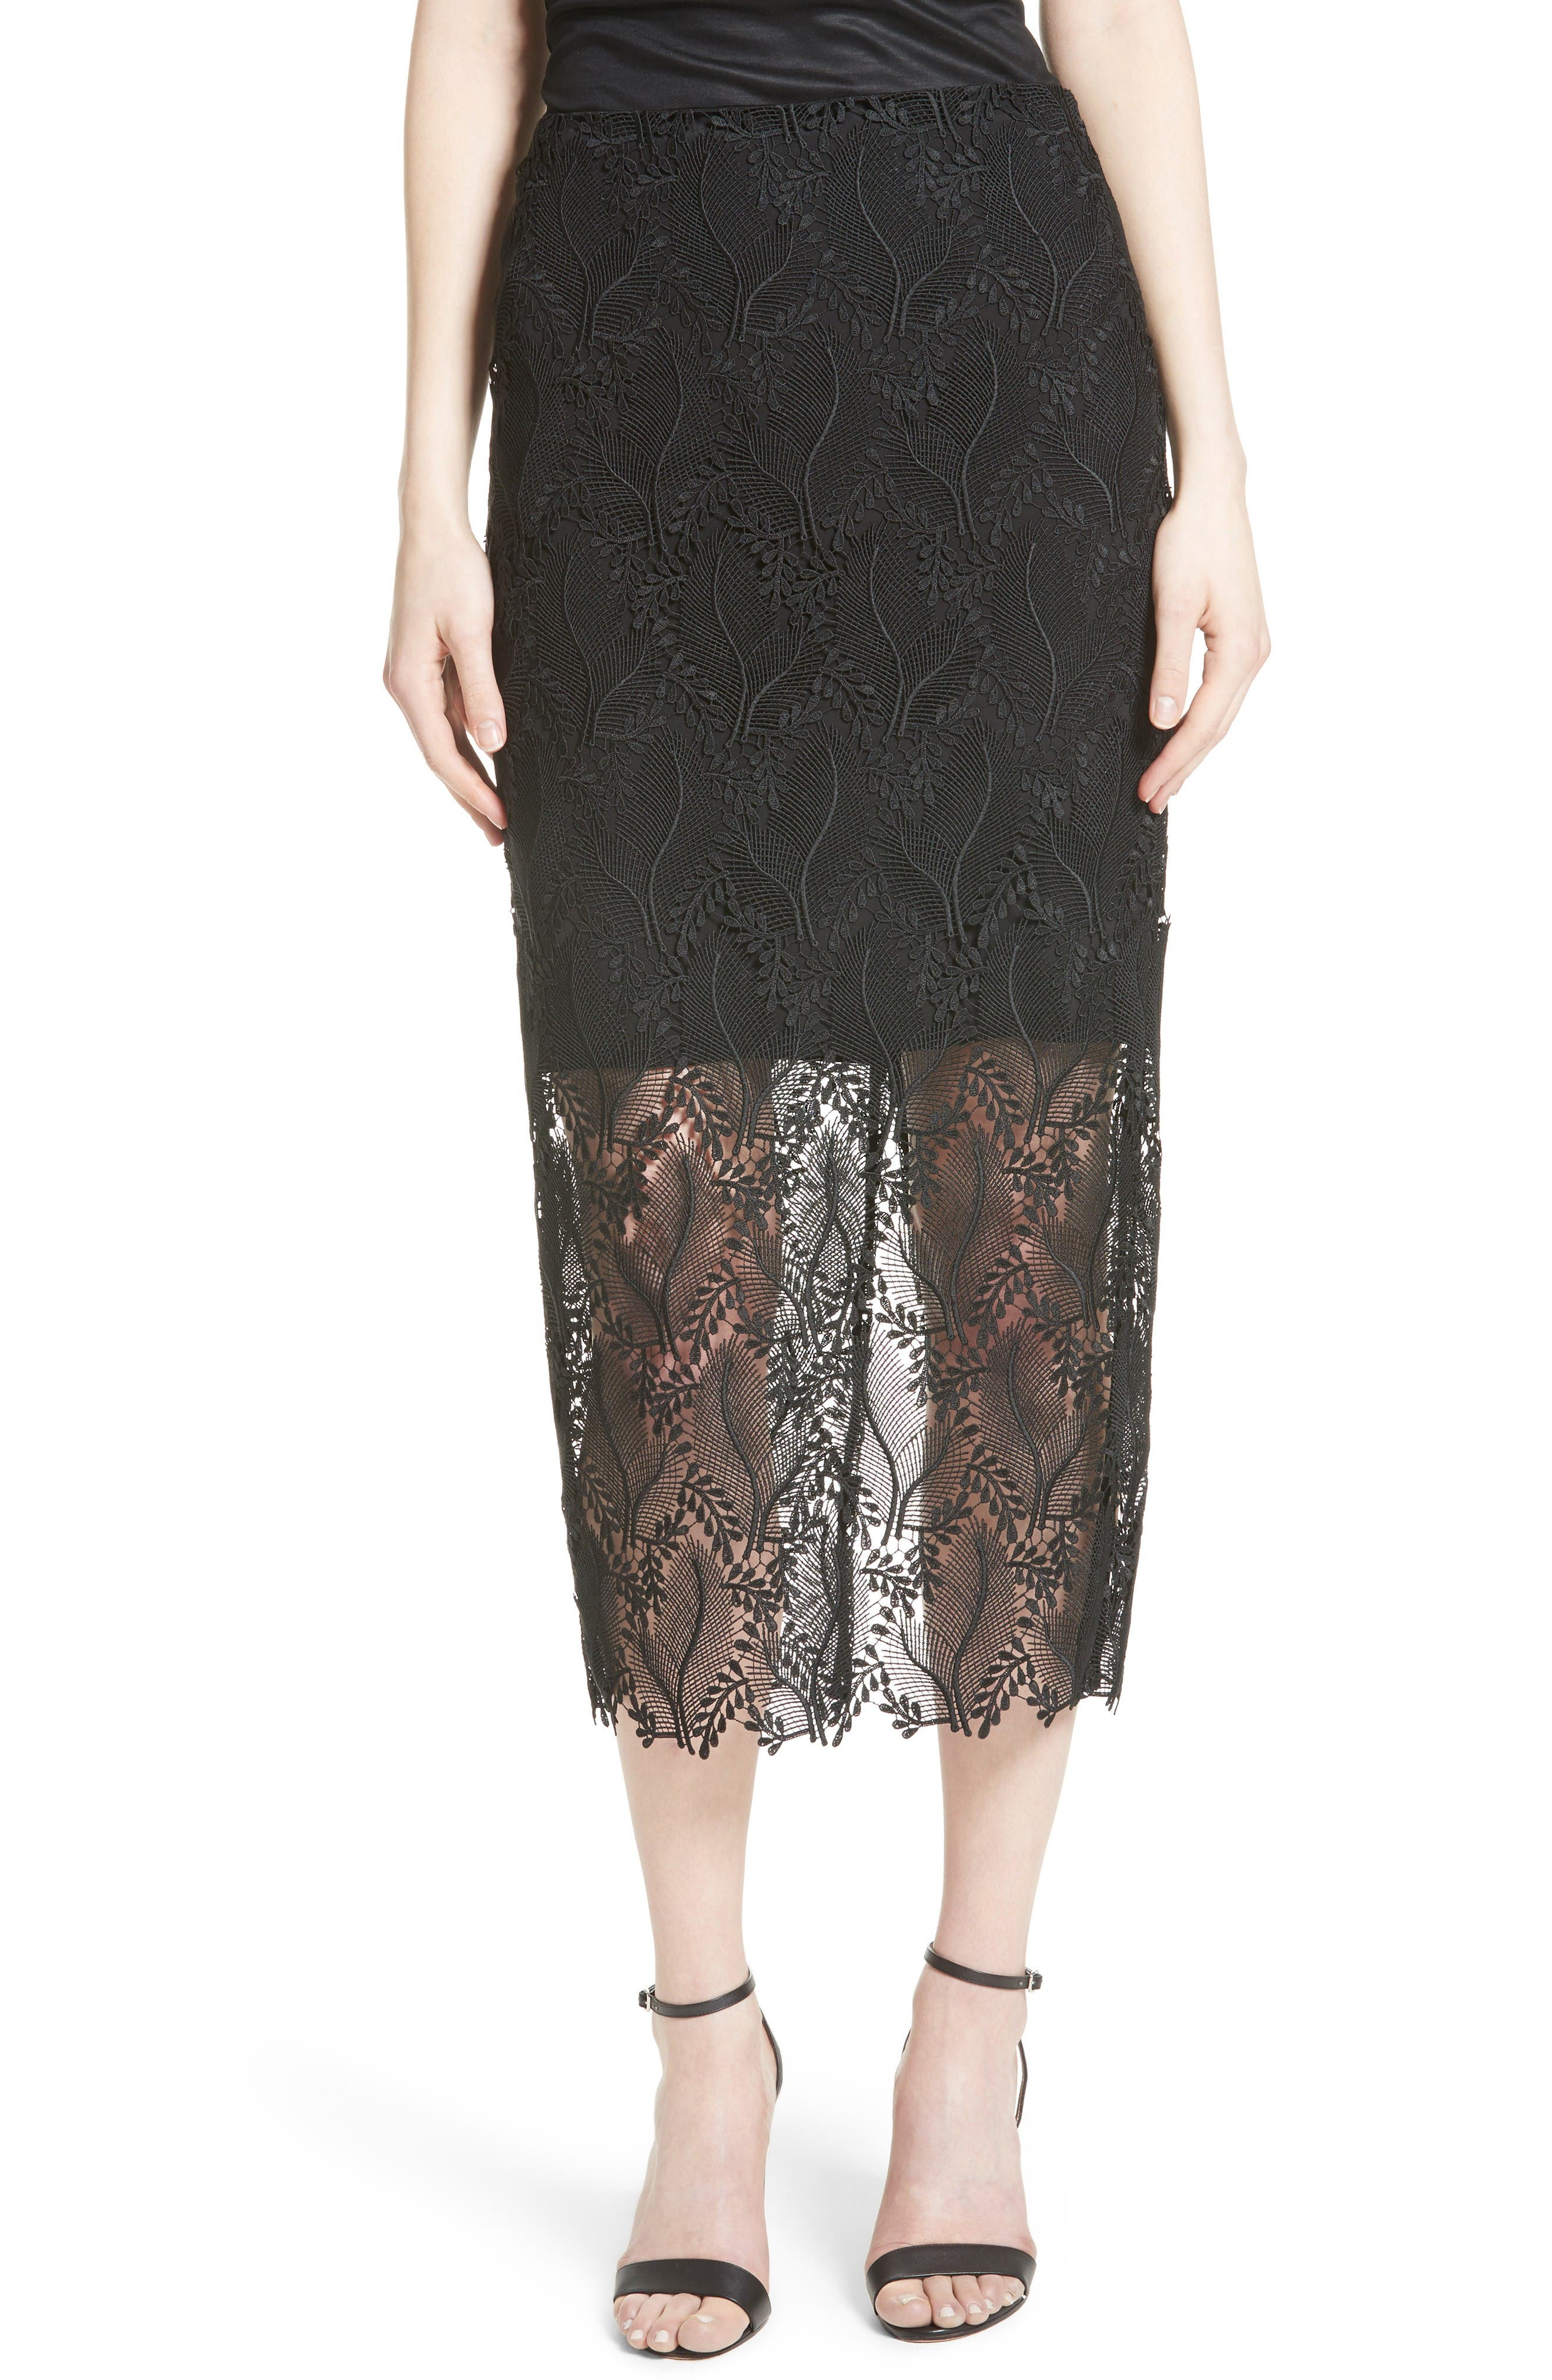 Diane von Furstenberg Lace Overlay Pencil Skirt